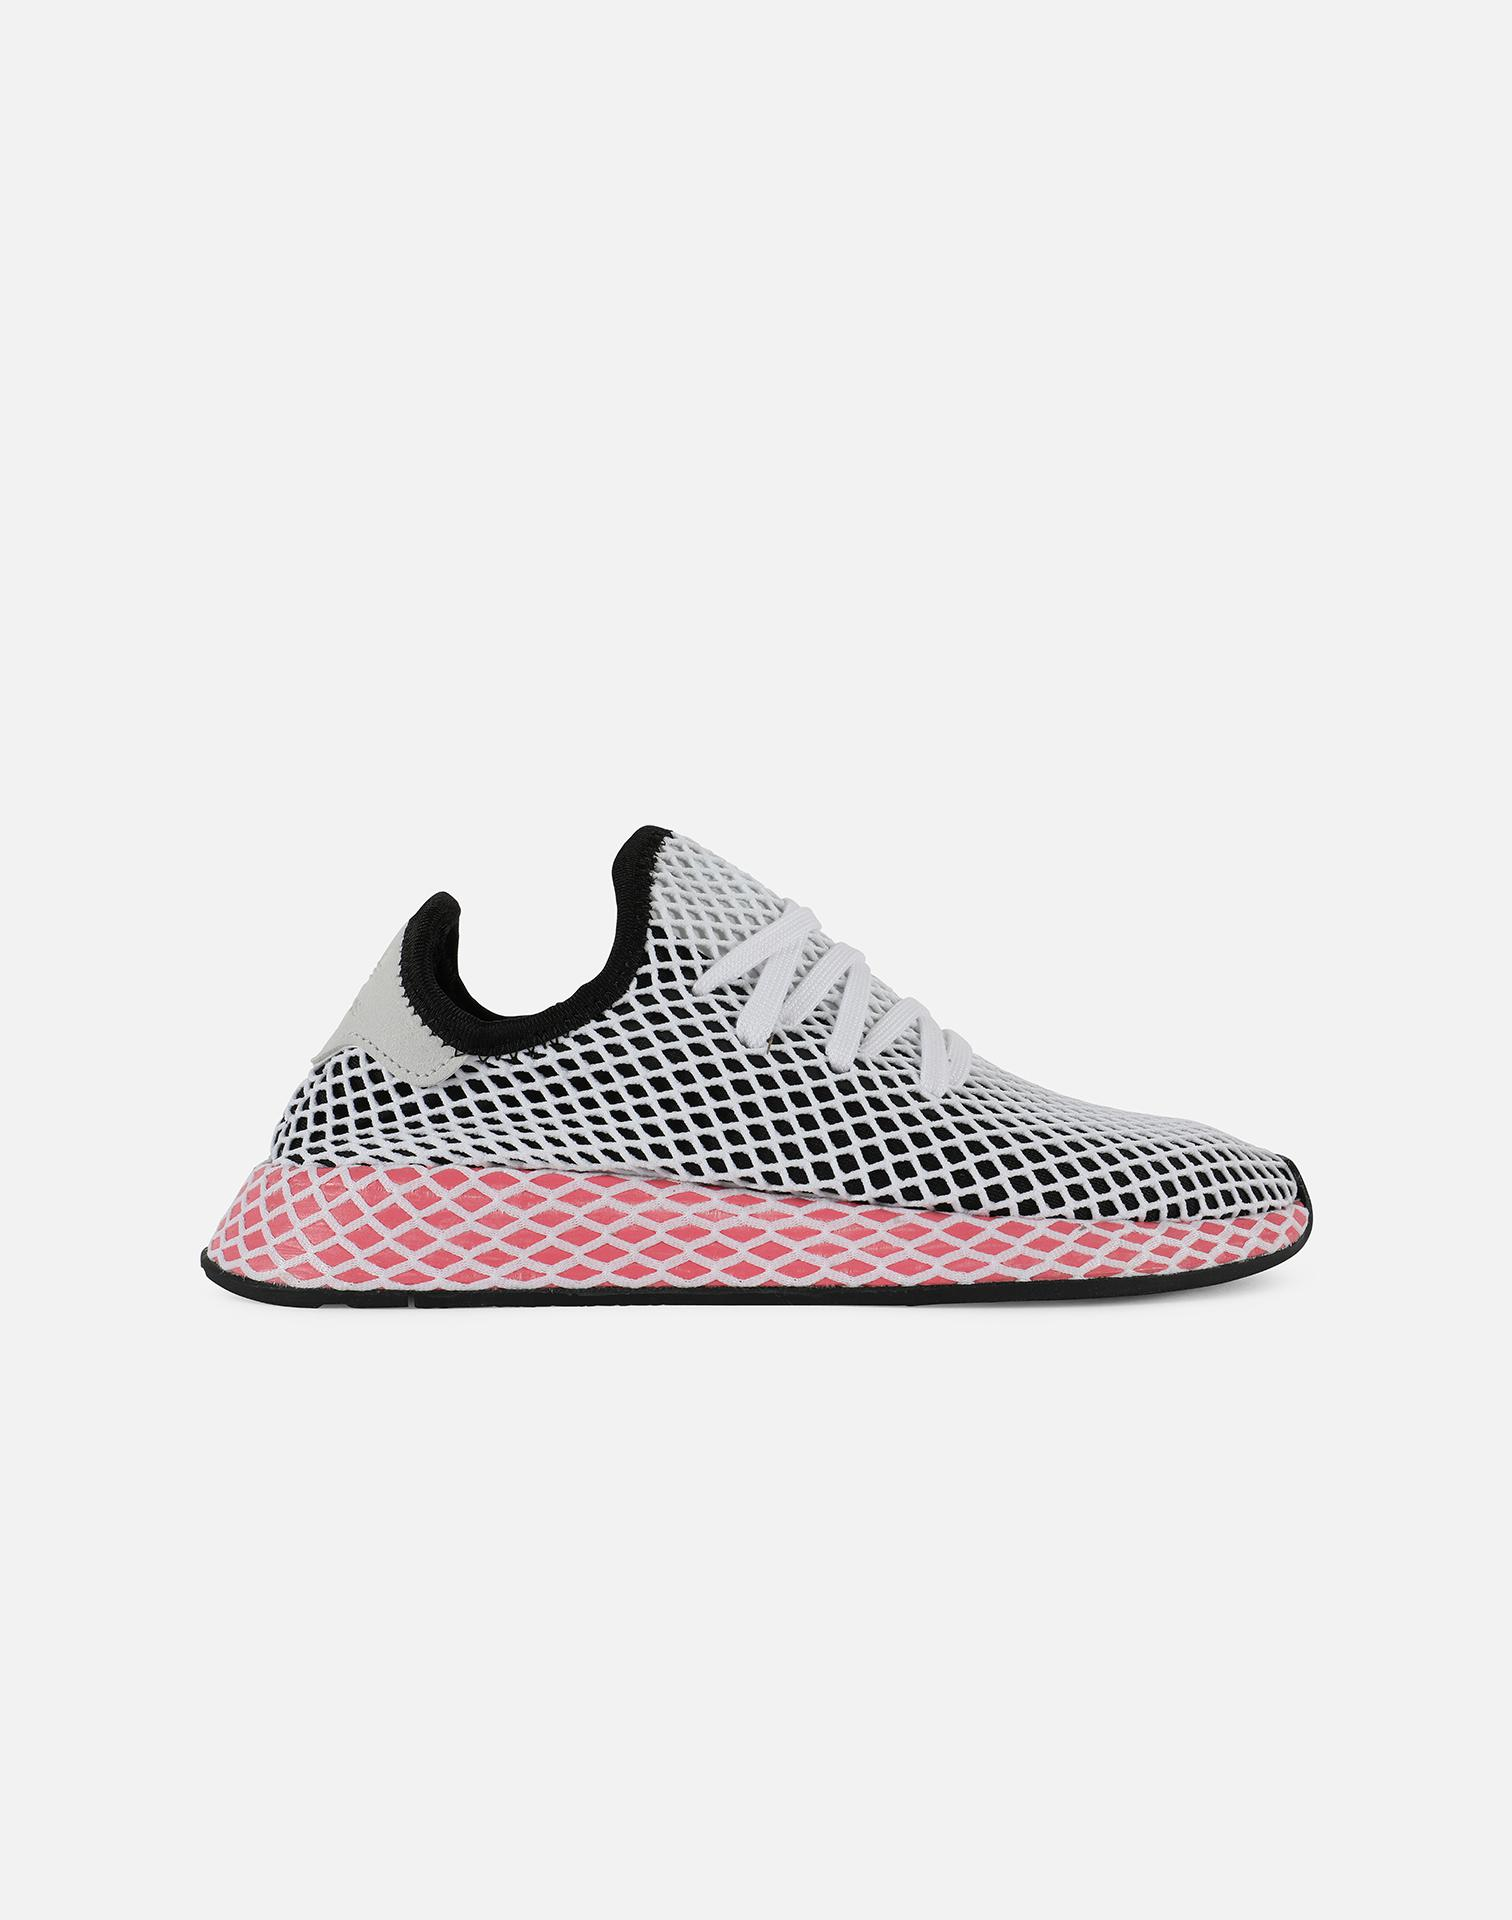 Lyst in Adidas Deerupt Runner in Lyst Black Save 65% 5d13bf